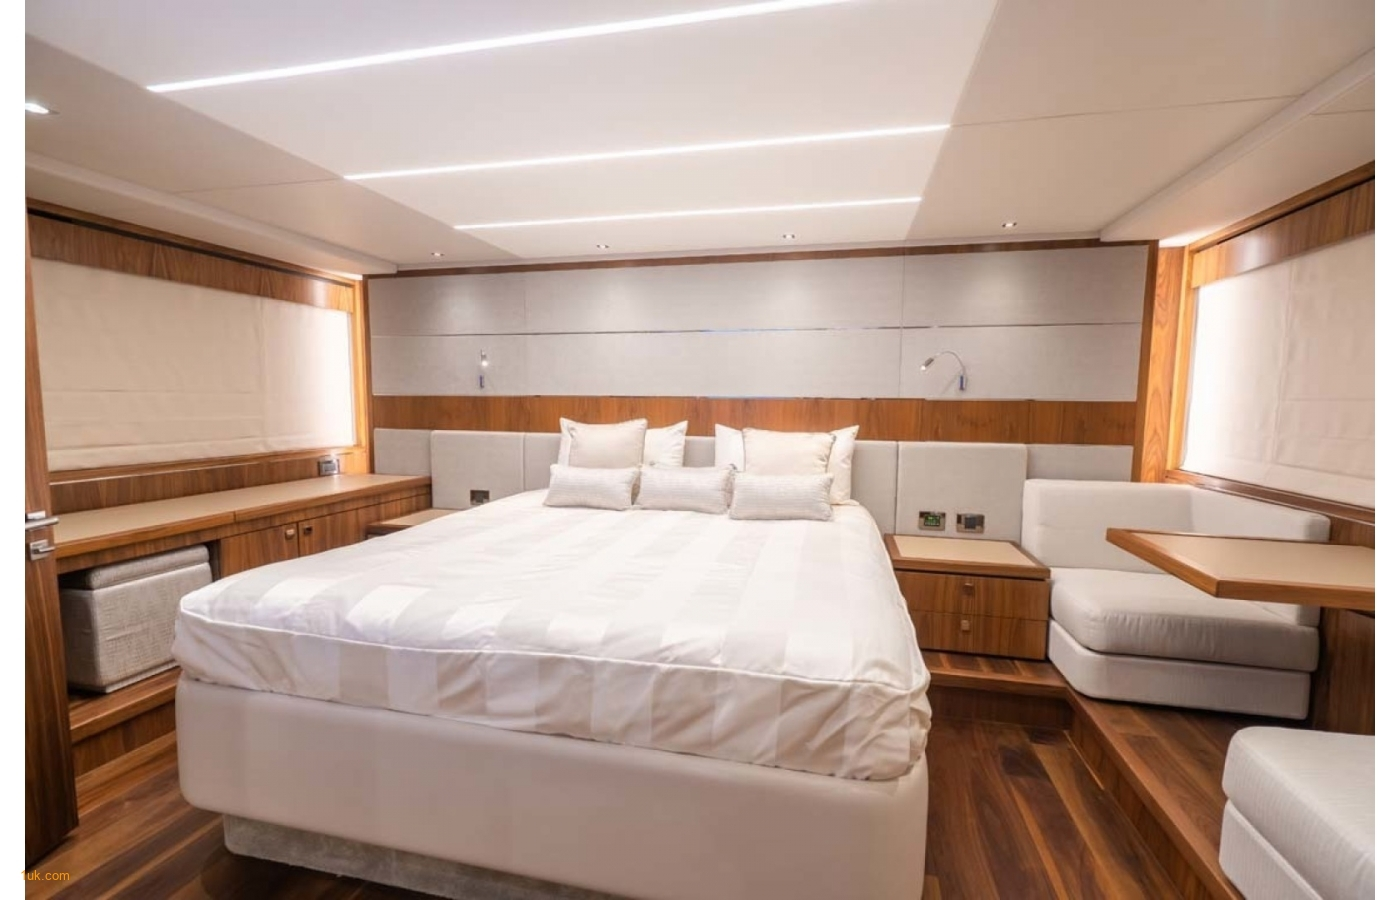 Double bed cabin on the Predator 74 cruiser